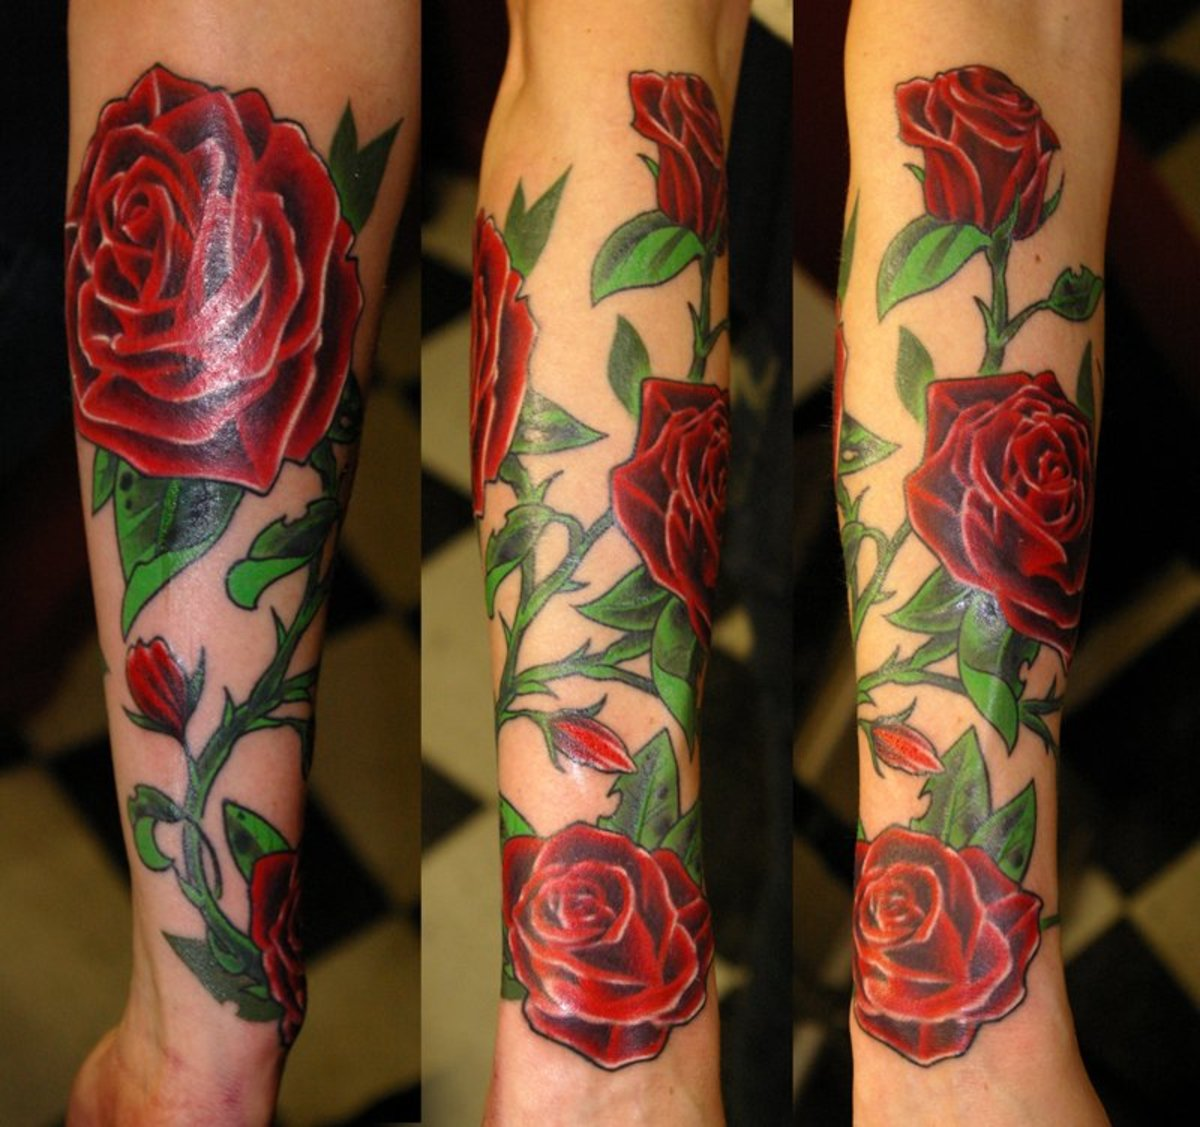 Meaning of Rose Tattoo - Black, Blue, Purple, and Other Roses Tattoos